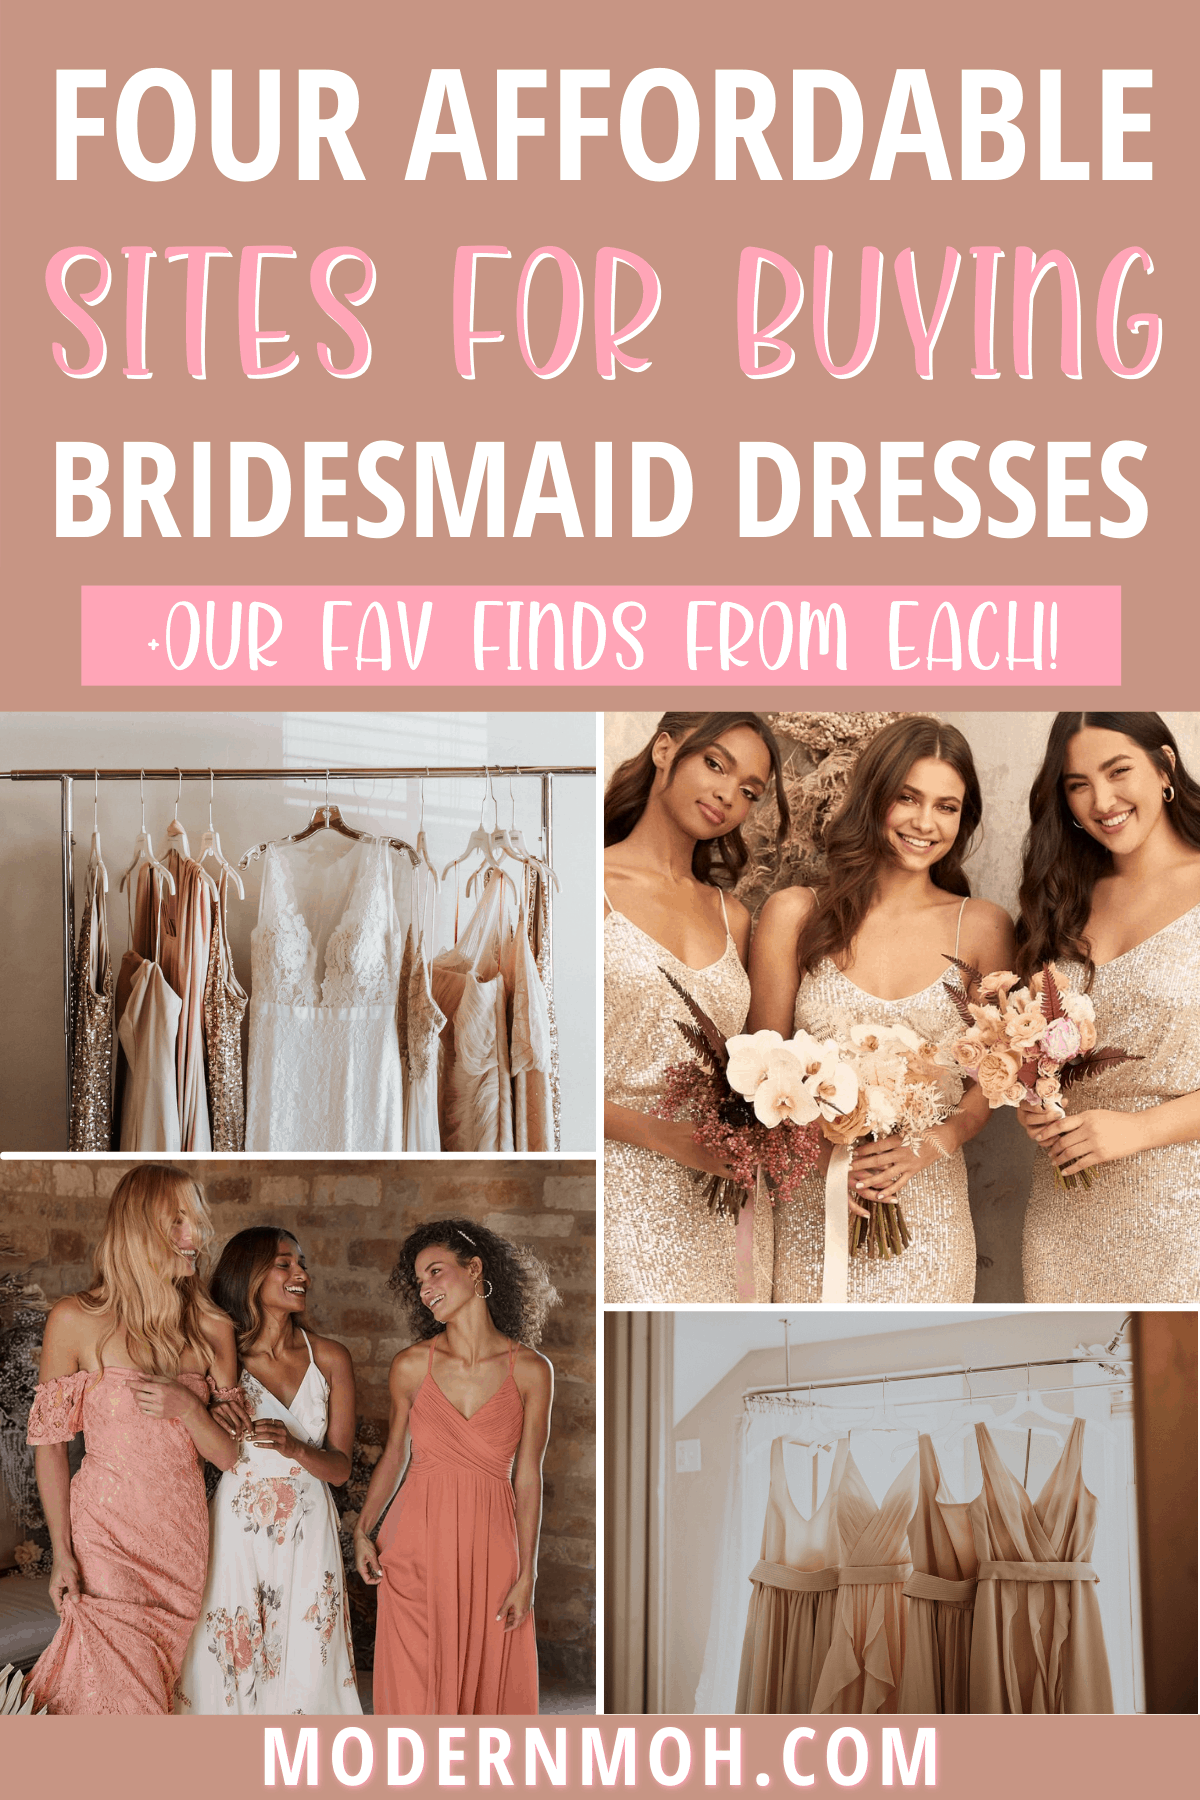 4 Places to Buy Affordable Bridesmaid Dresses Online